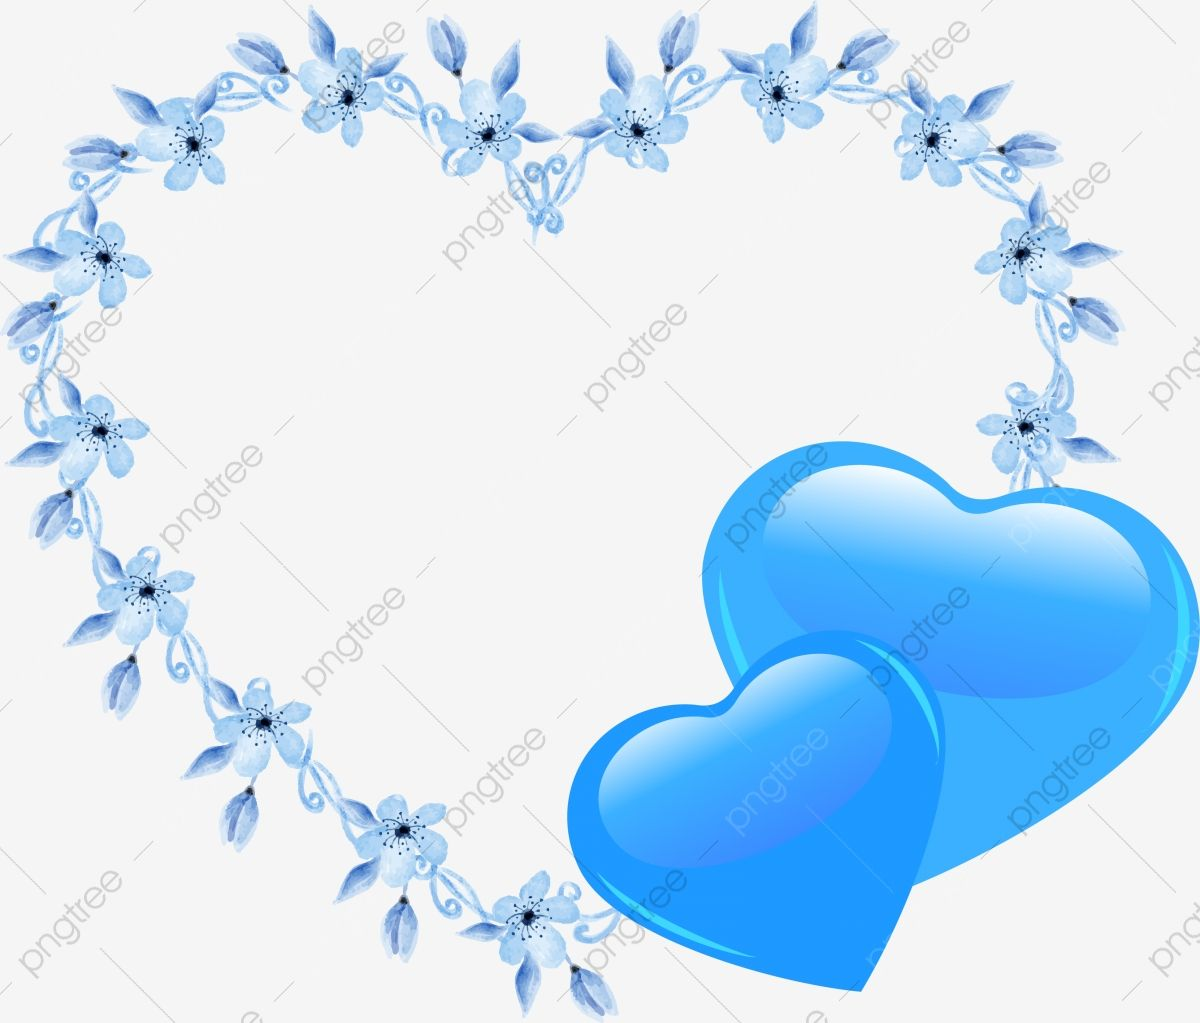 Hand Drawn Heart Decoration Hand Drawn Pattern Hand Painted Border Blue Heart Decoration Blue Clipart Blue Pattern Blue Border Png And Vector With Transparen Heart Hands Drawing How To Draw Hands